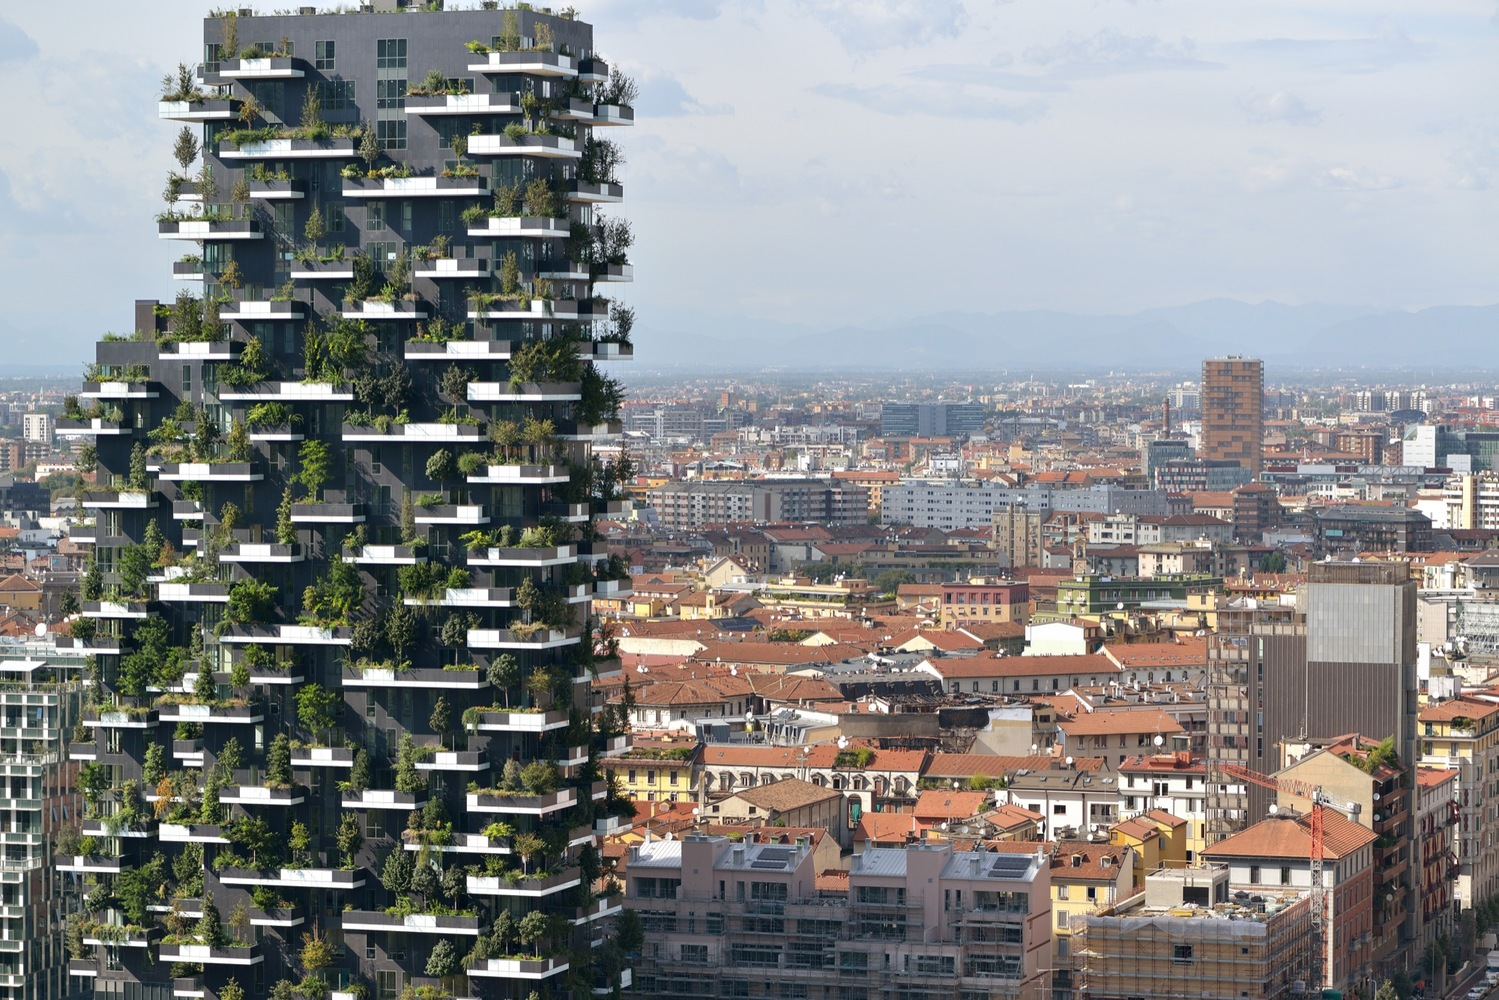 Europe Green City - IGS Magazine - Opinion - features - 2